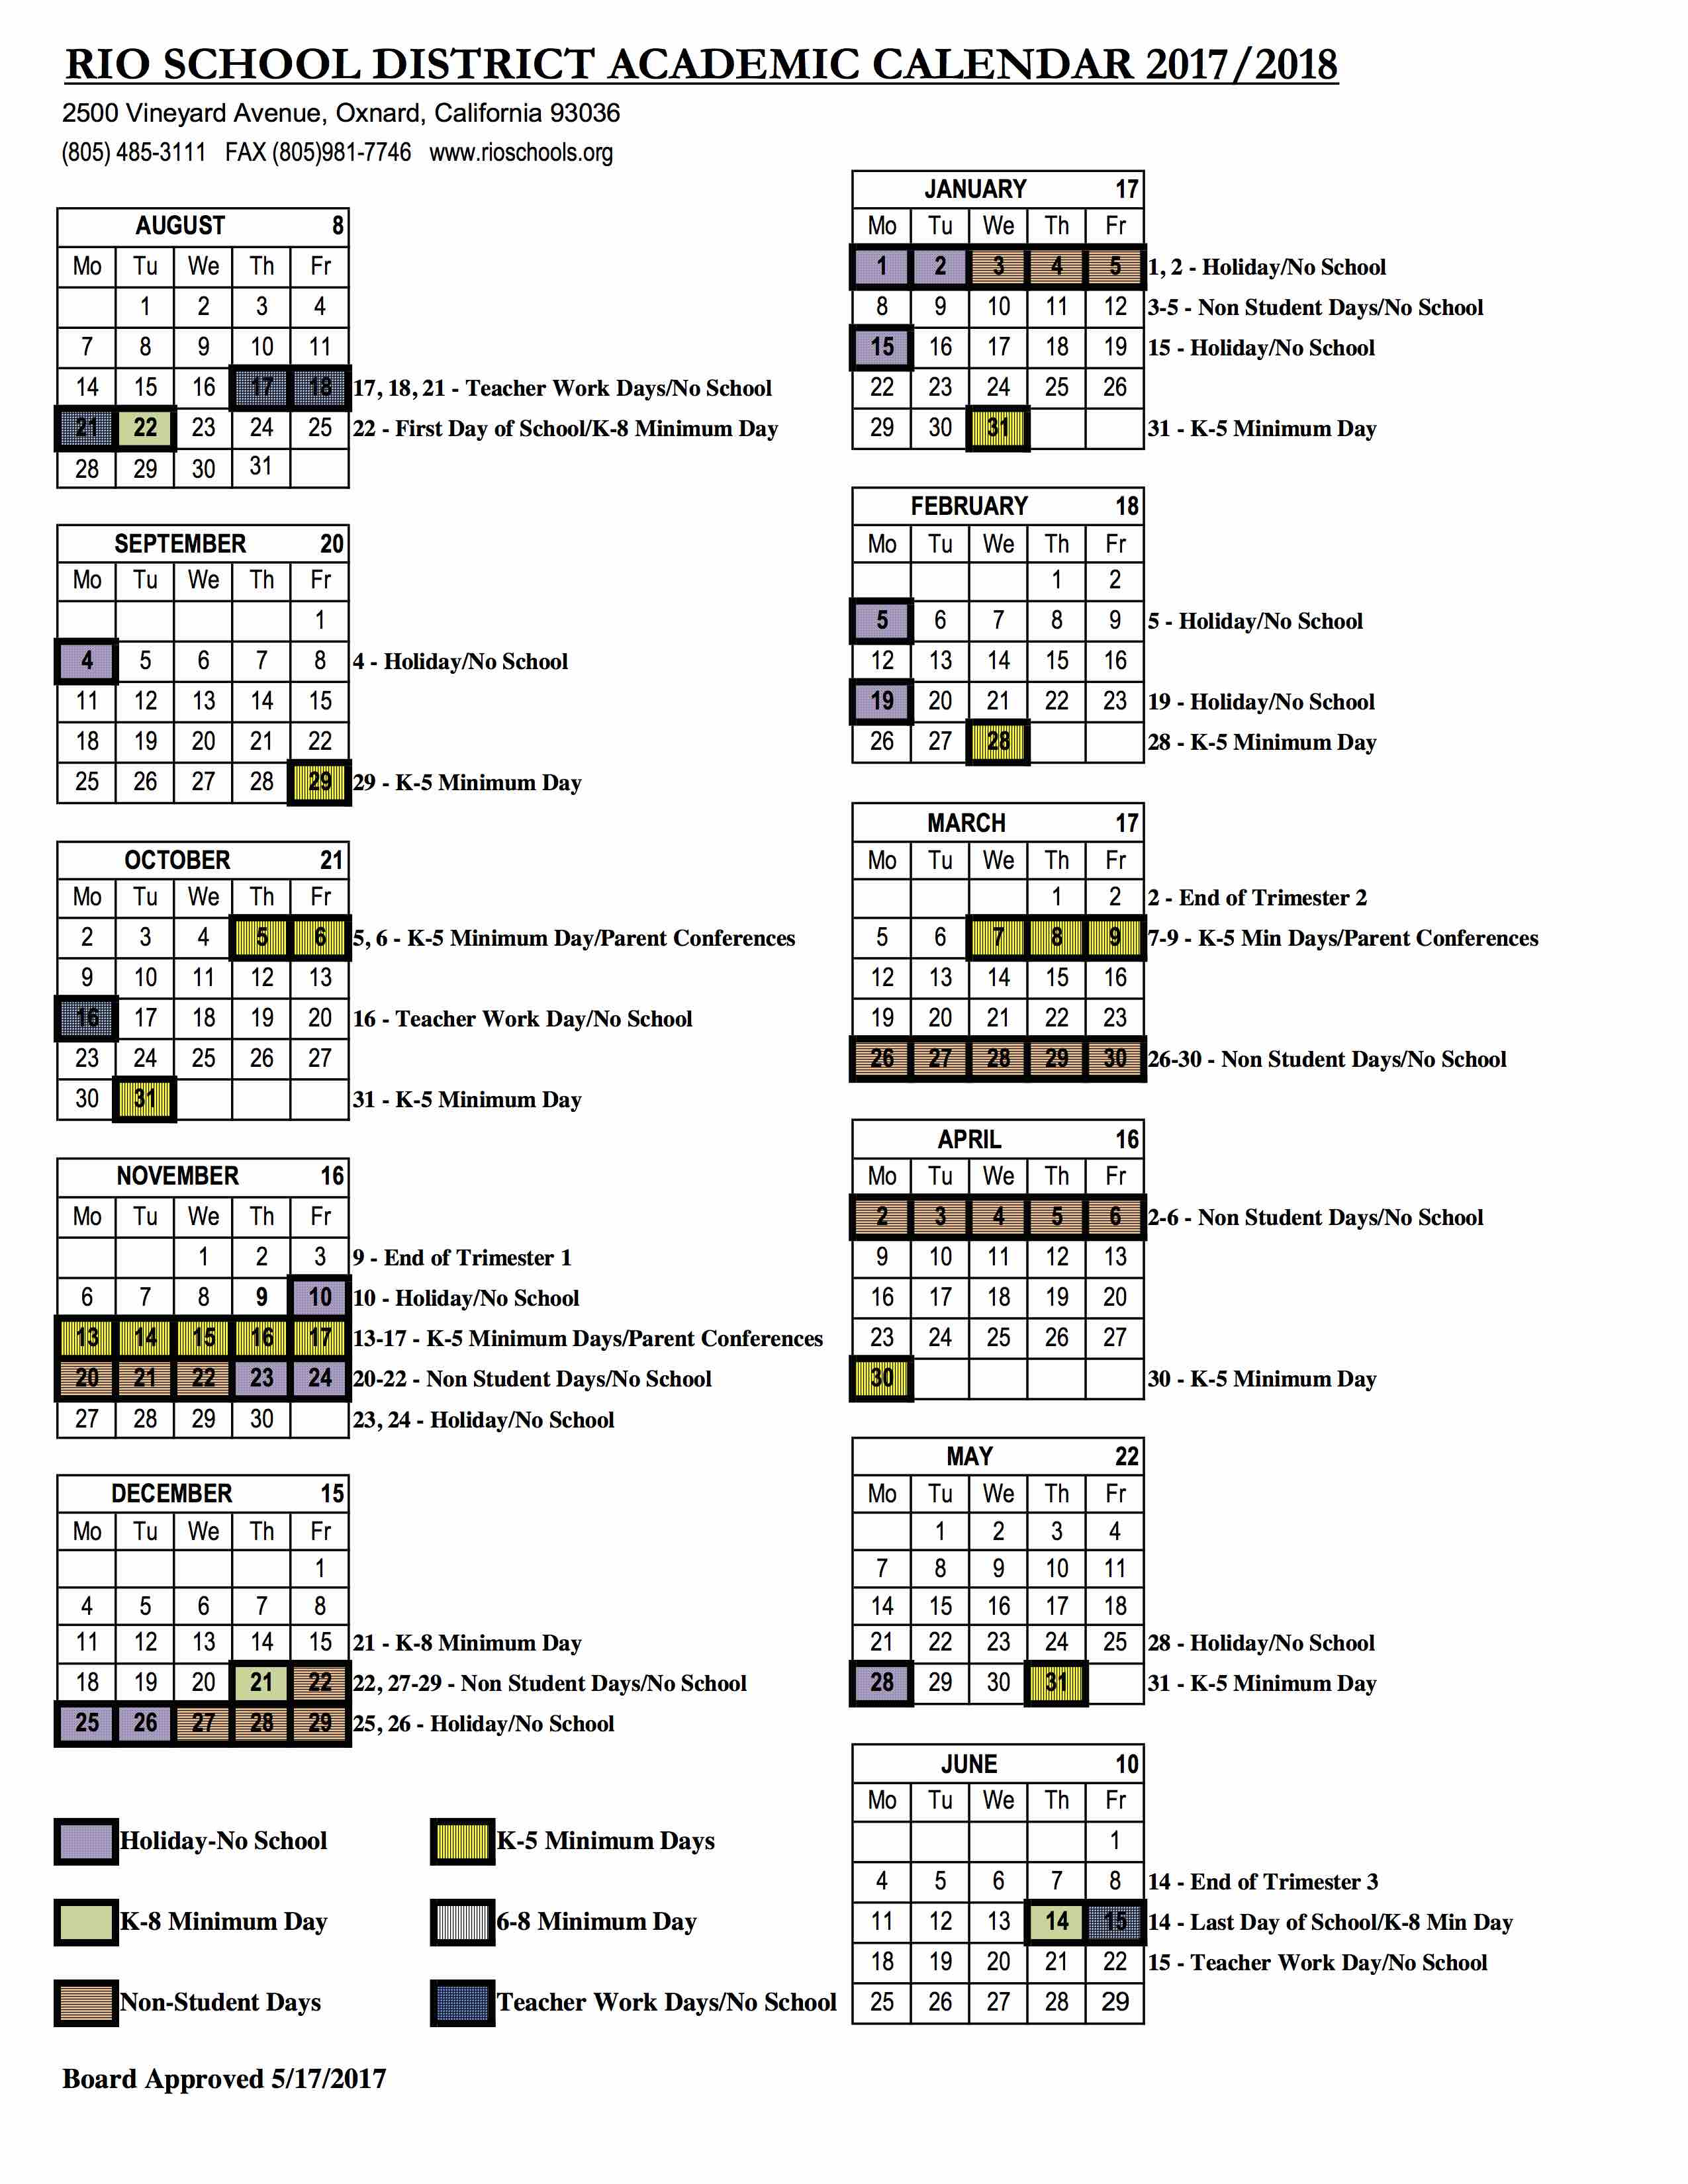 2017 2018 Academic Calendar – Rio School District